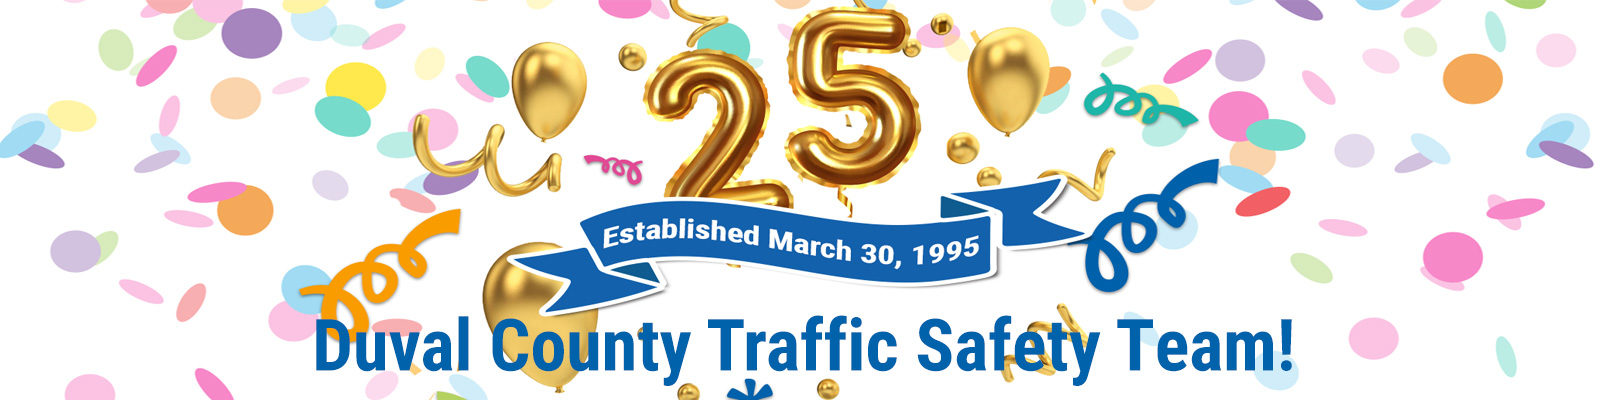 Happy Birthday Duval County Traffic Safety Team